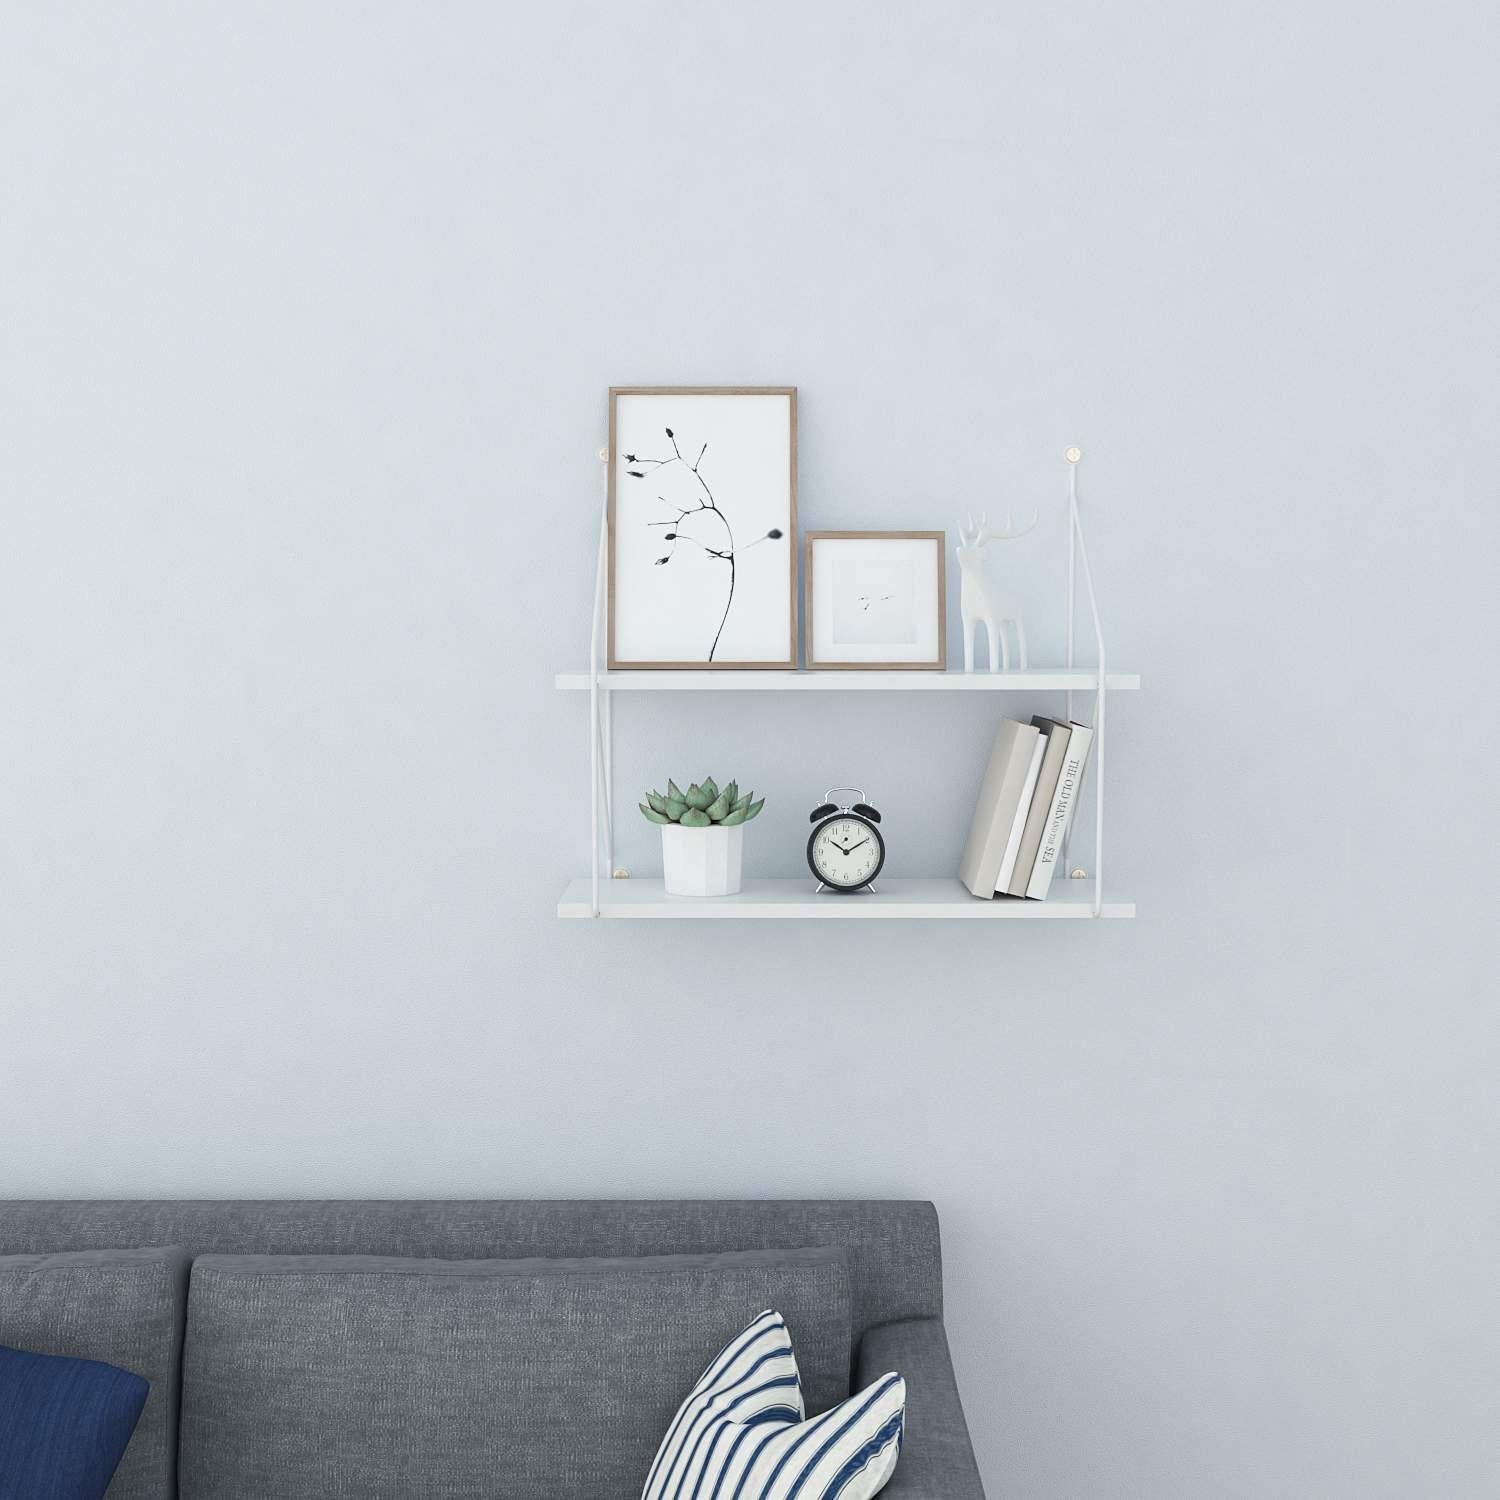 Utheing 2 Tiers Decorative Floating Wall Shelves Vintage Industrial Style Wall Mounted Storage Shelf for Books, Collectibles, Plants, Crafts, Photos (White)